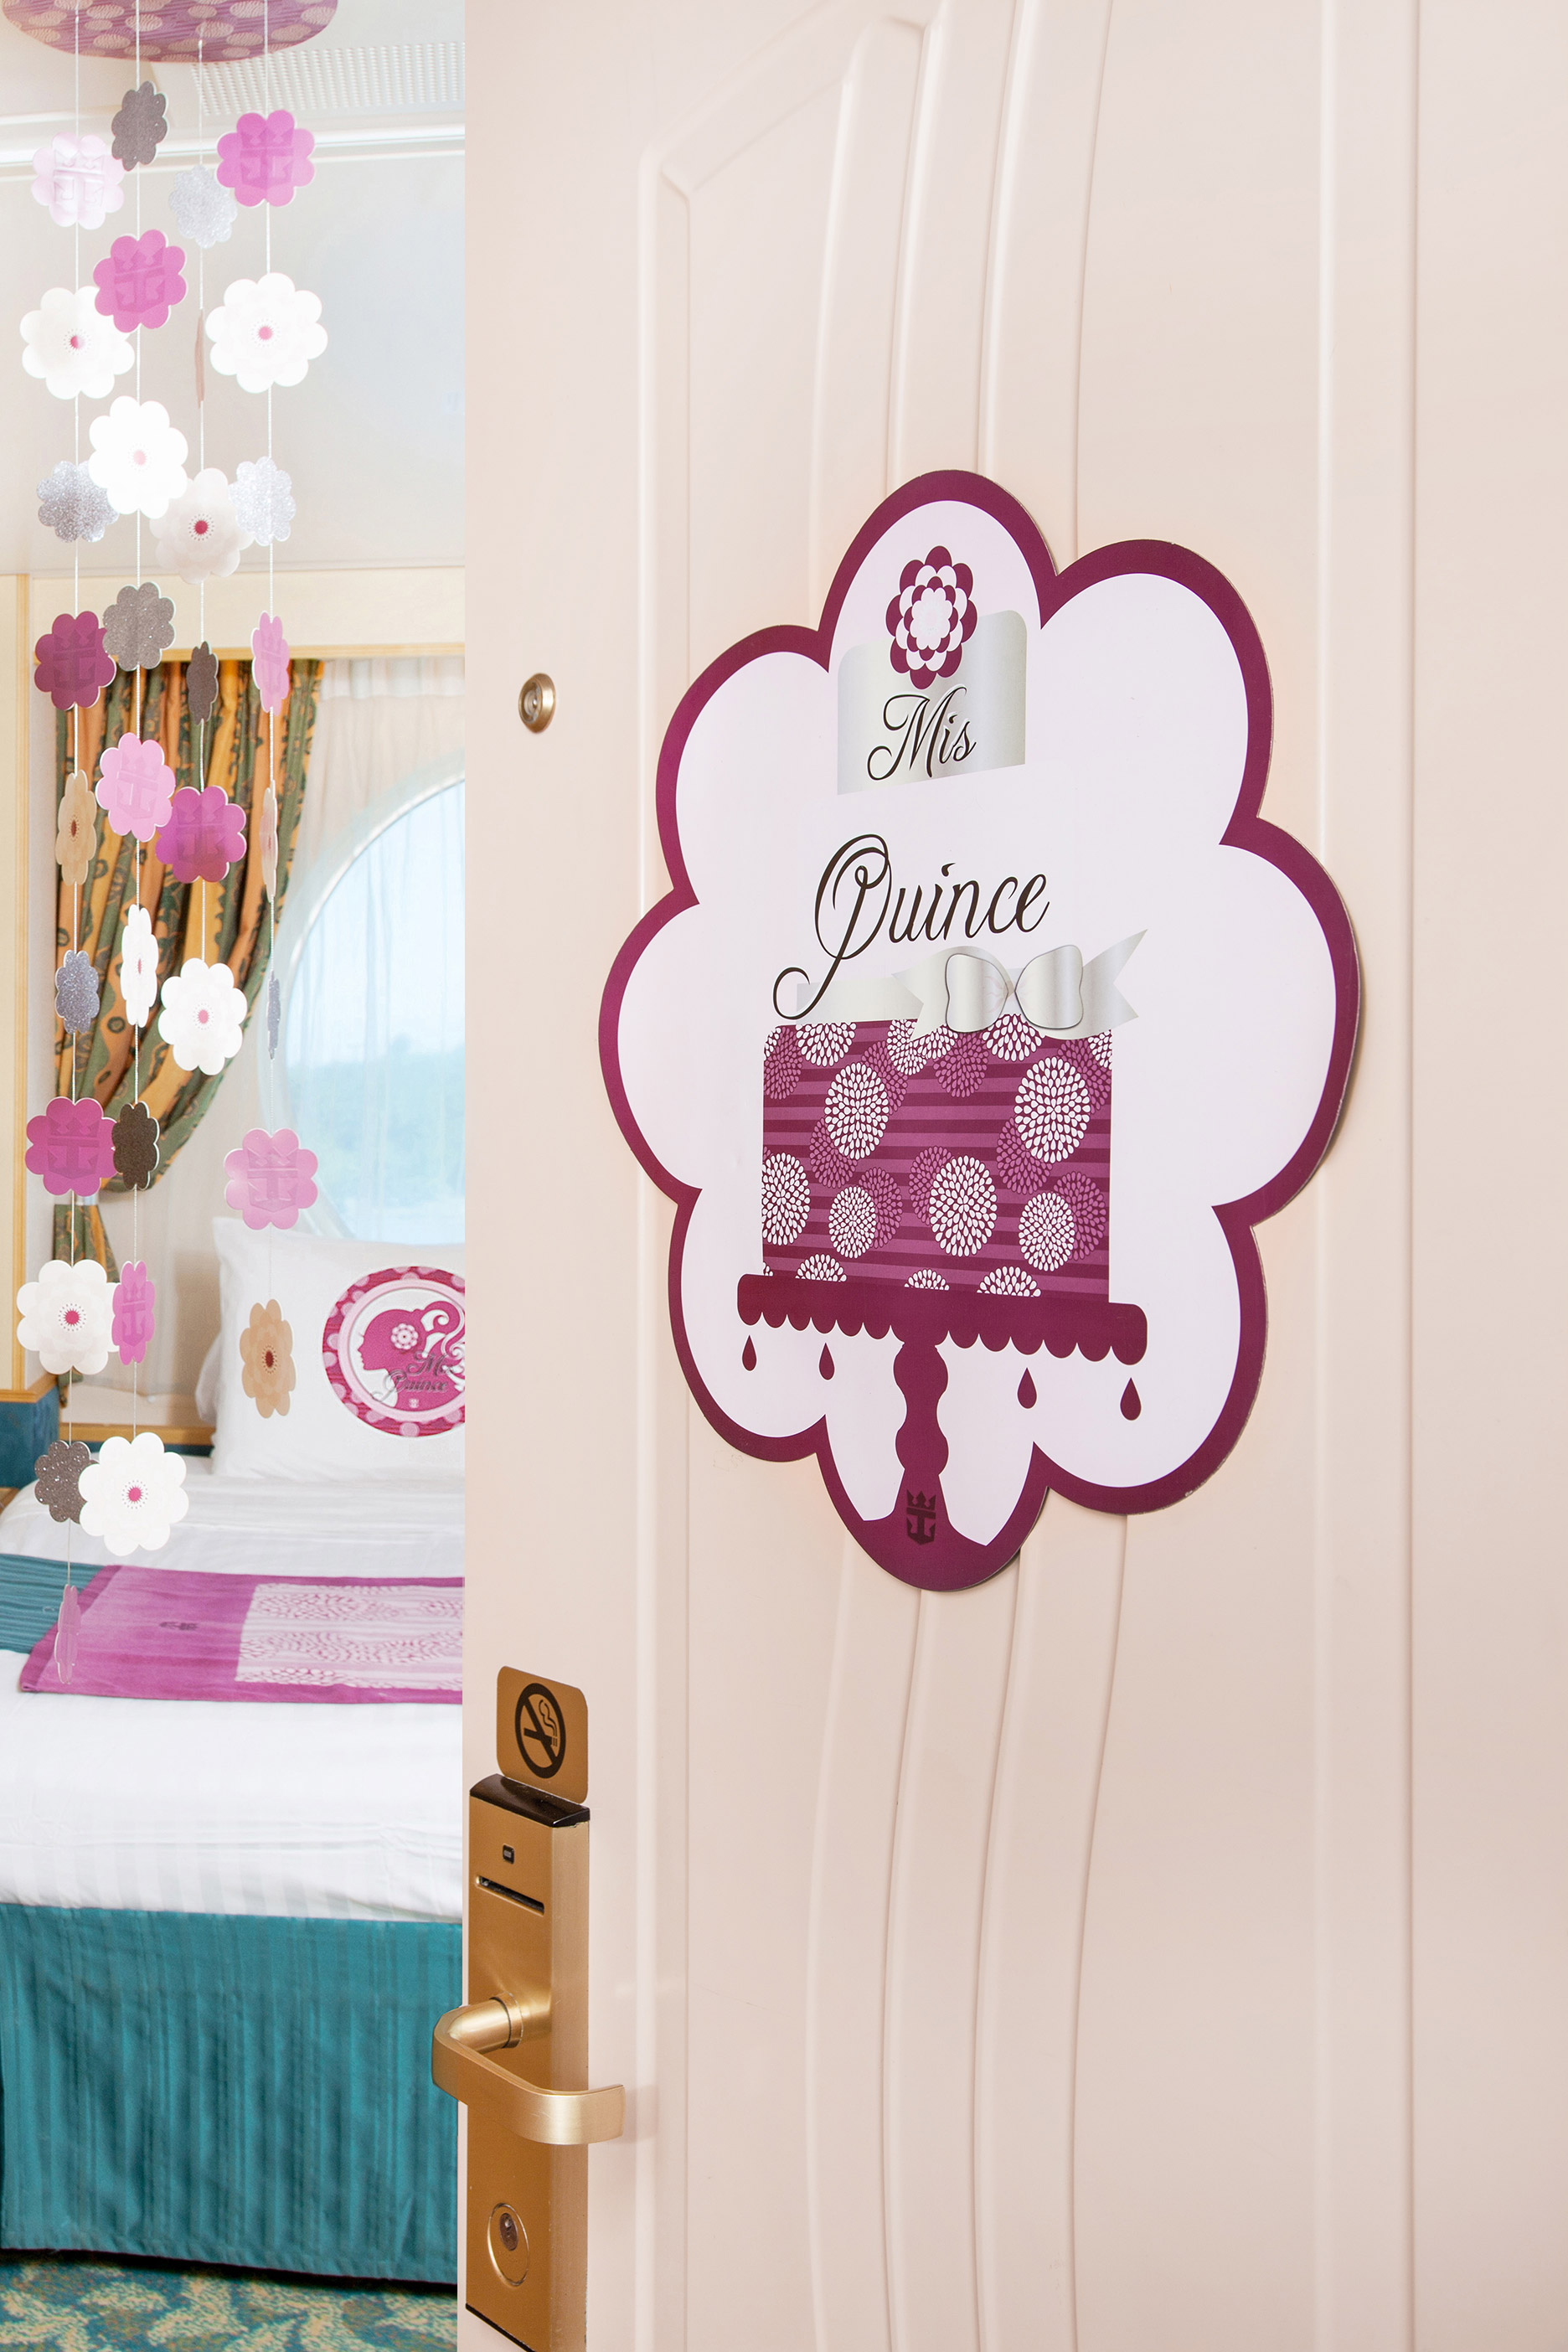 Mis quince room d cor package for Room decor gifts